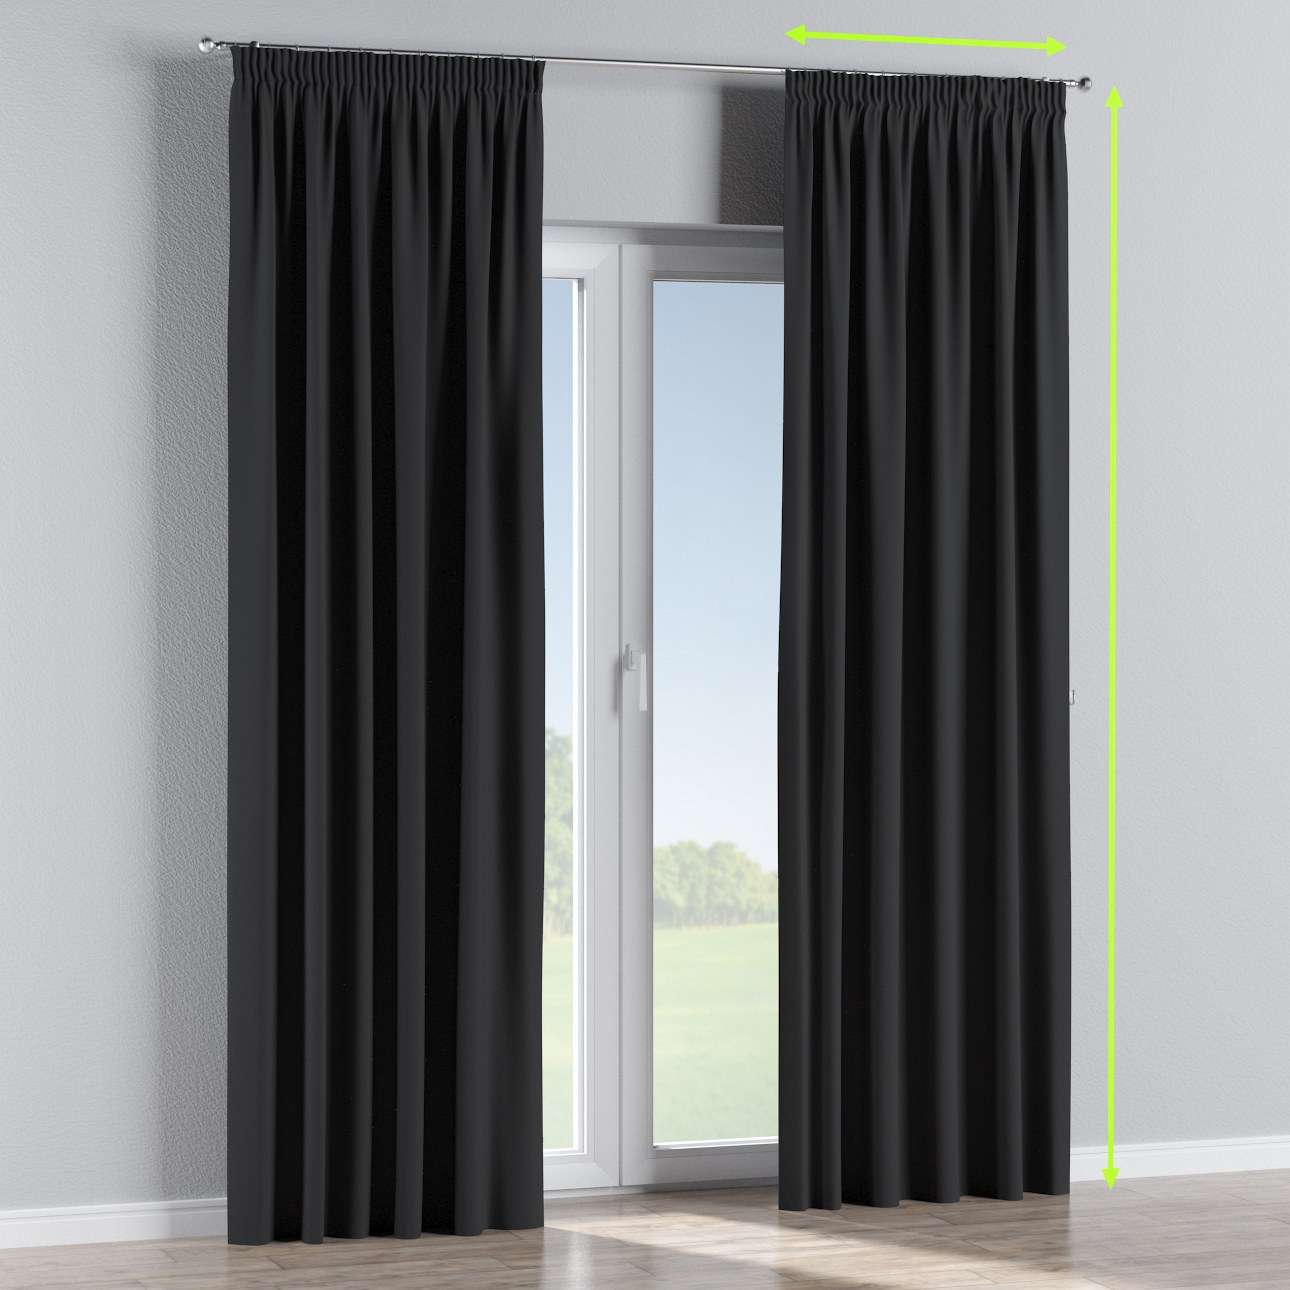 Blackout pencil pleat curtains in collection Blackout, fabric: 269-99